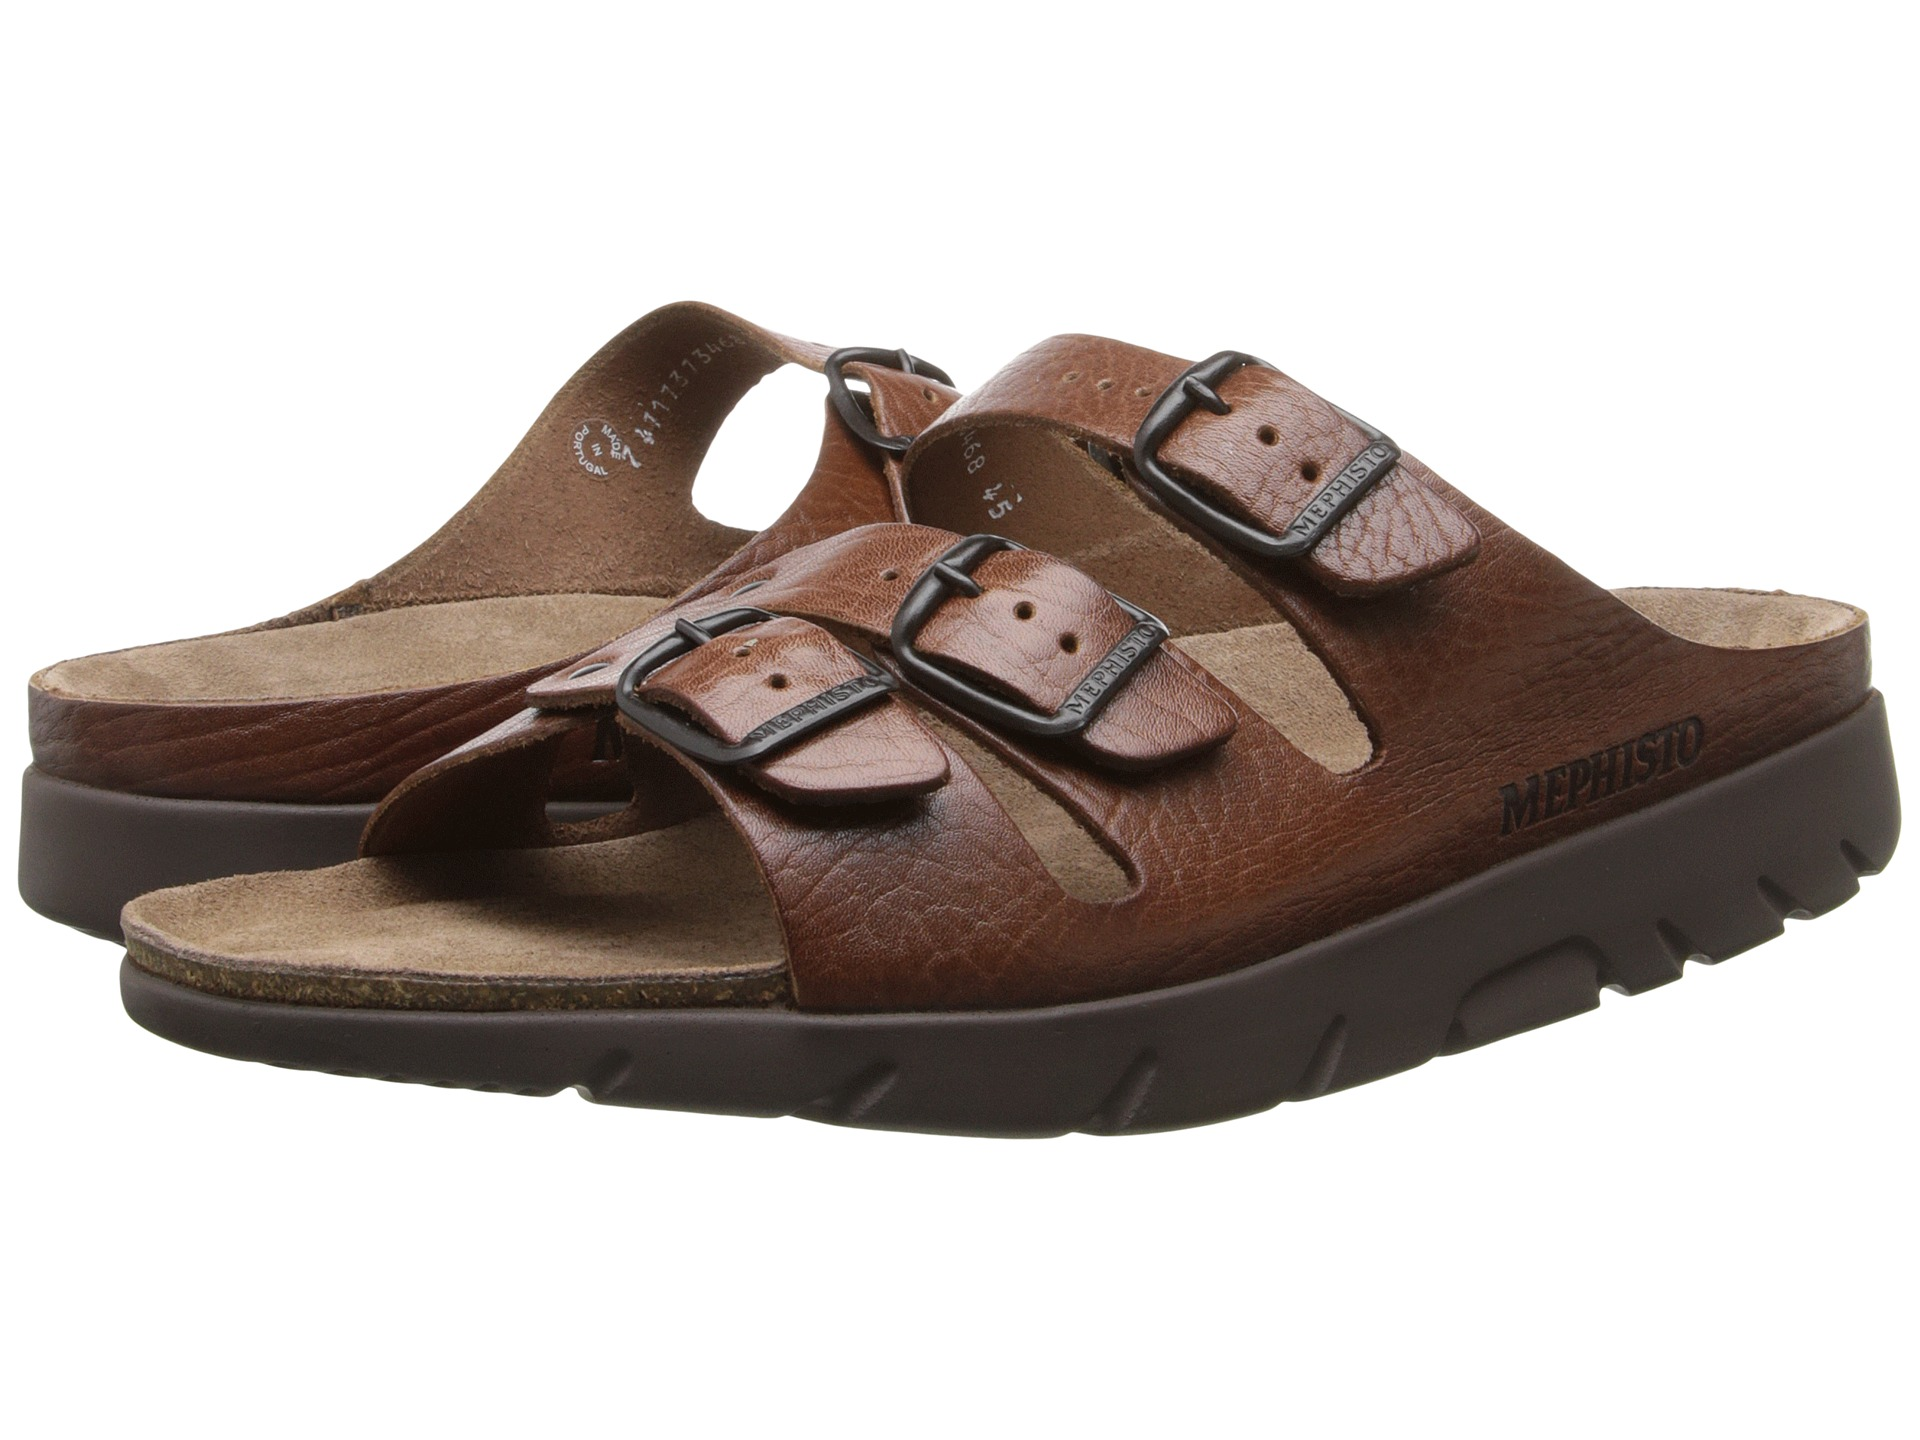 Zappos Mephisto Womens Shoes